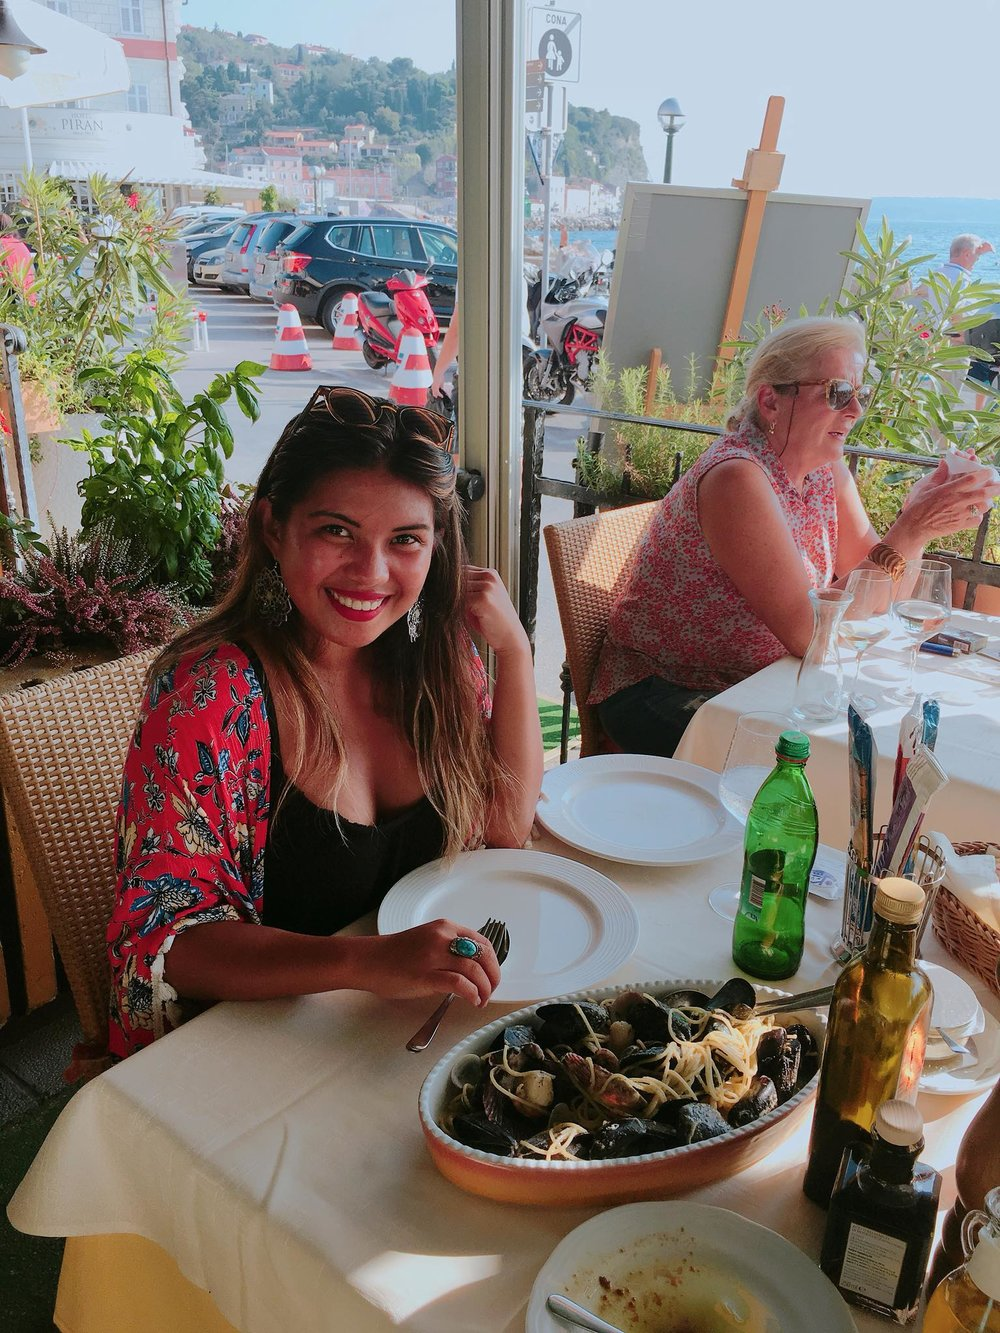 Kach Solo Travels Day 40: Swimming in the Adriatic sea and enjoying Piran, Slovenia